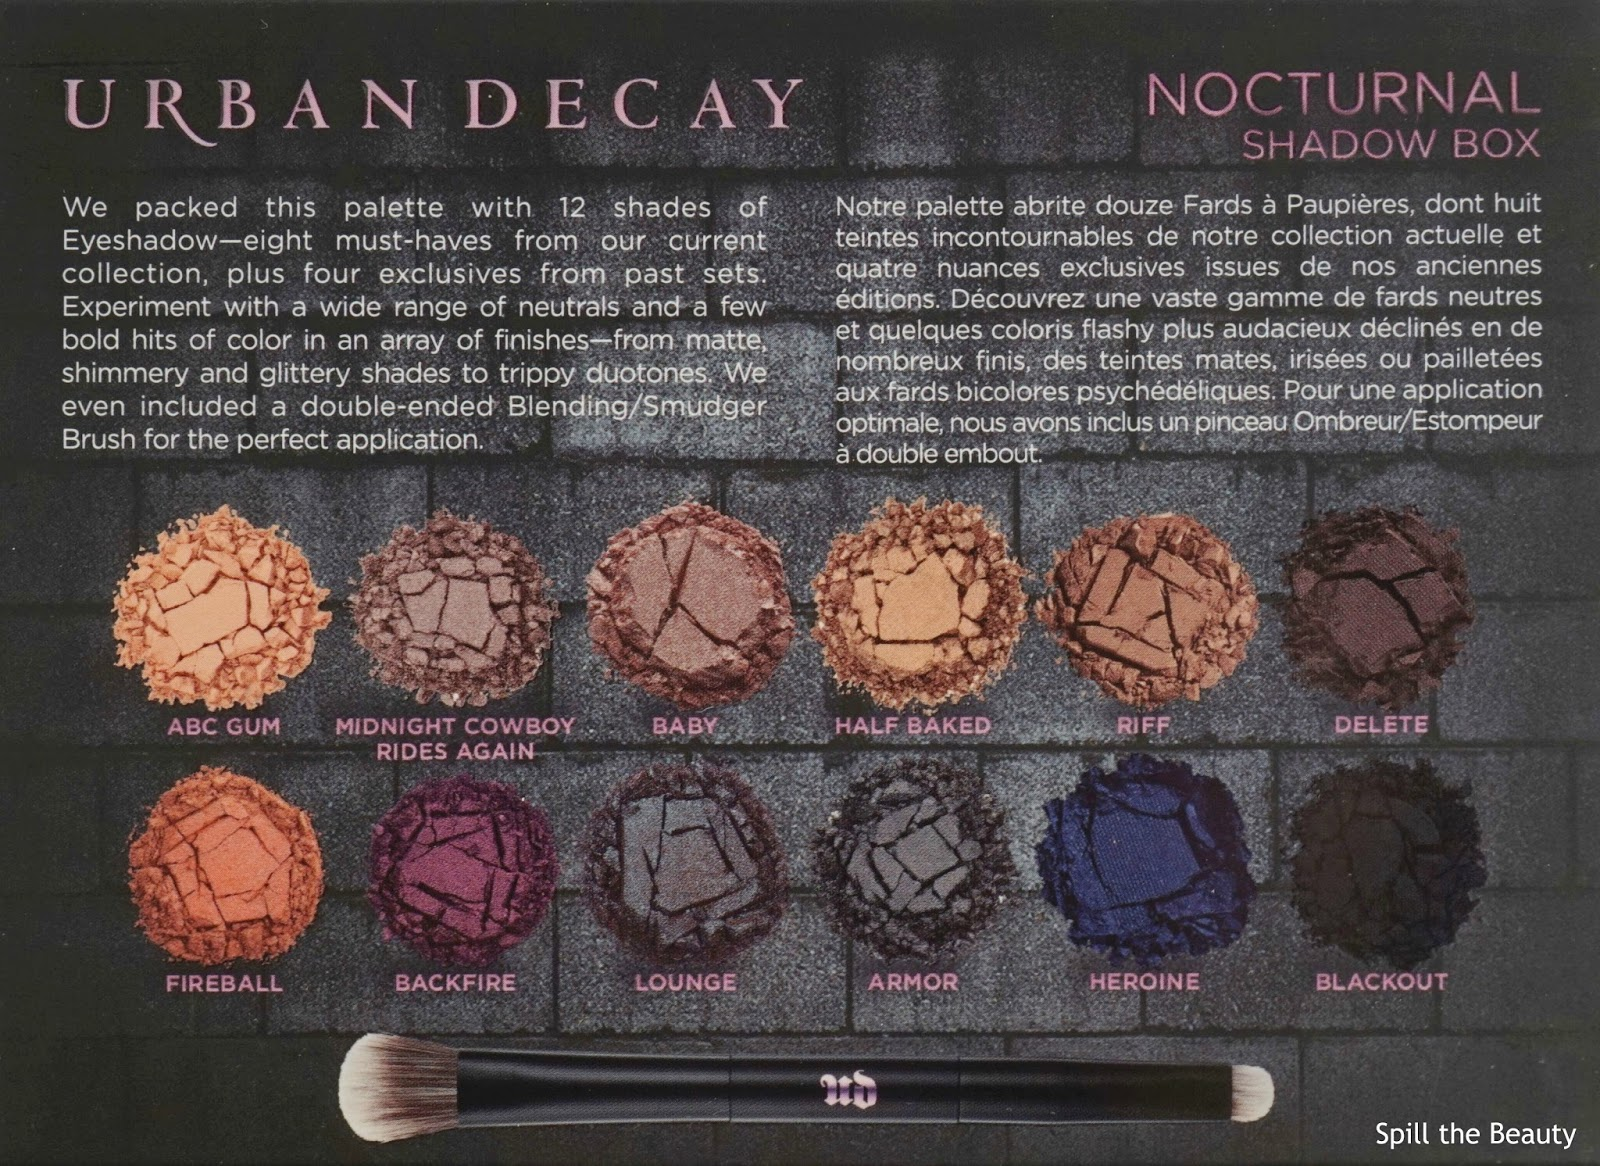 urban decay nocturnal shadow box vice lipstick nonsense fireball swatches